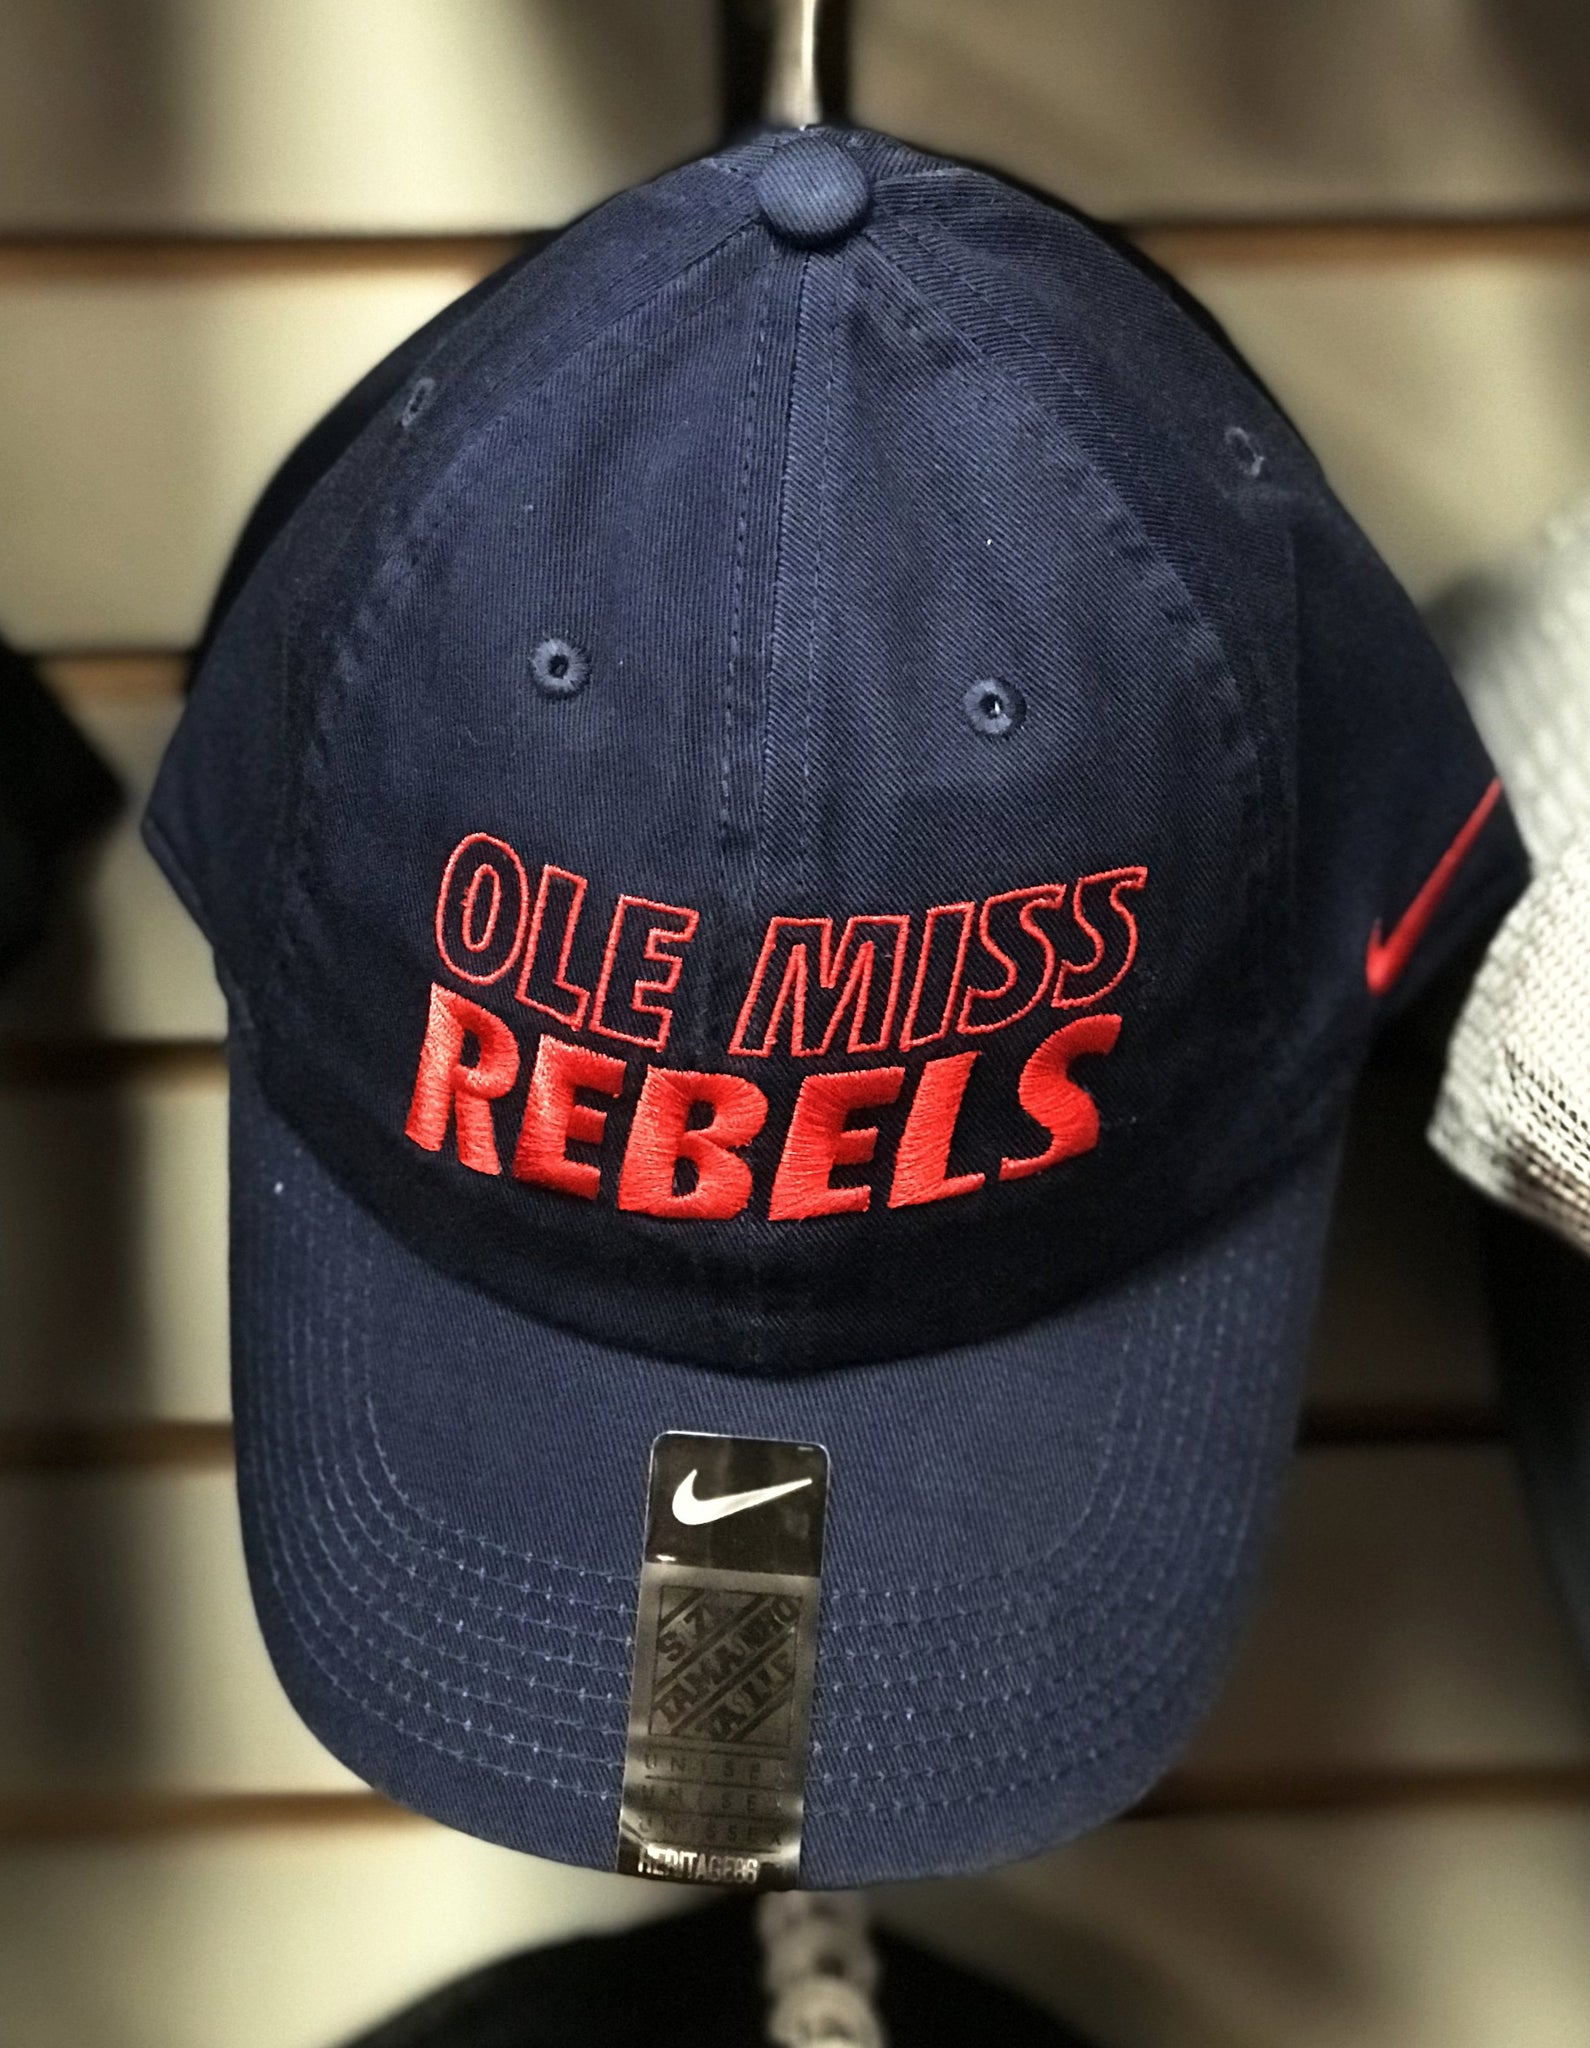 Ole Miss Rebels Nike Hat